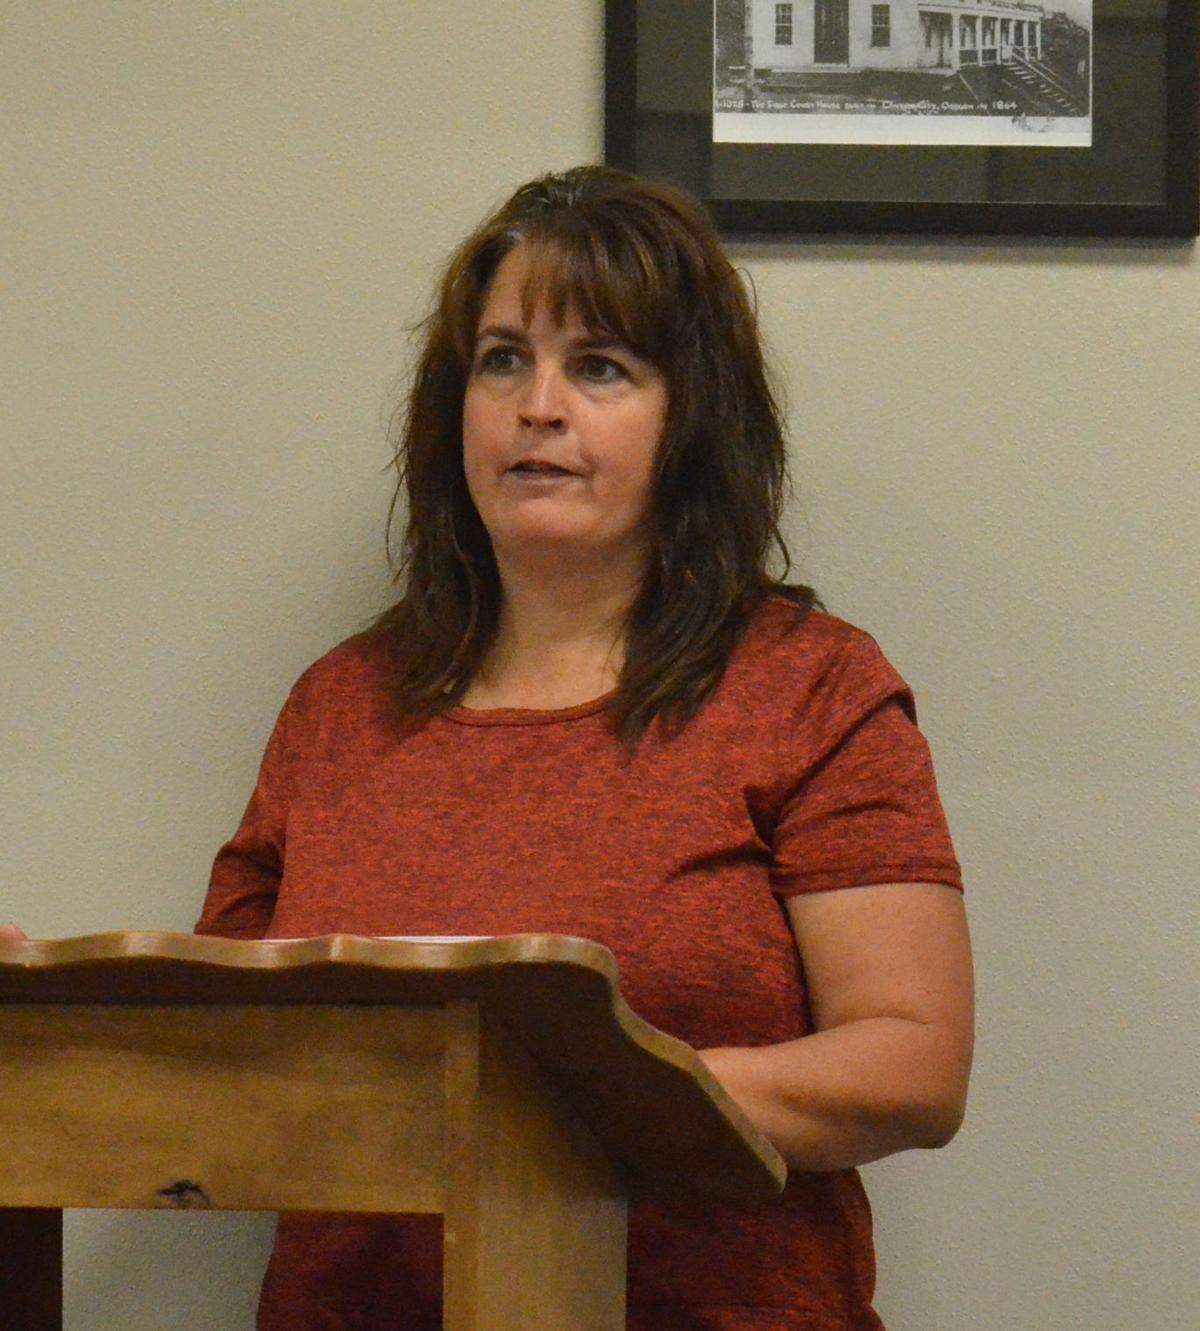 Grant County Court meeting Aug. 28, 2019